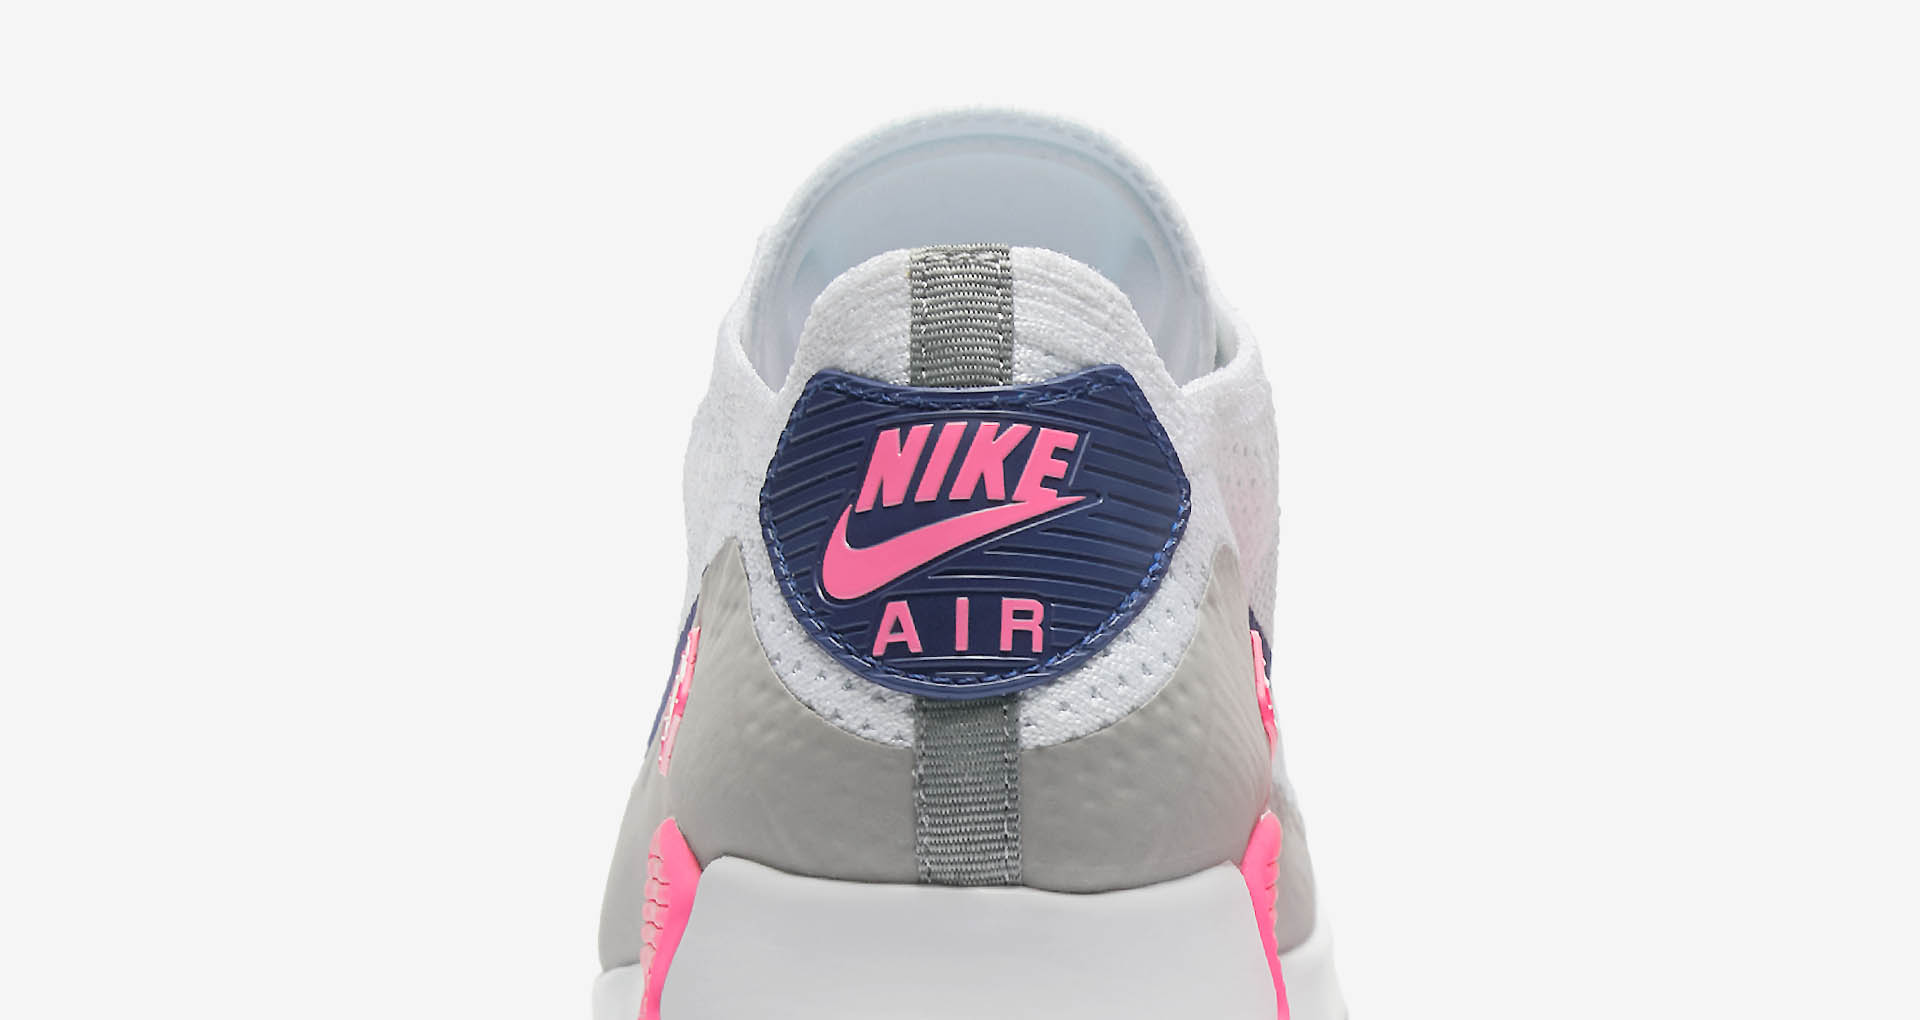 wmns-nike-air-max-90-ultra-2-flyknit-laser-pink-concord-10